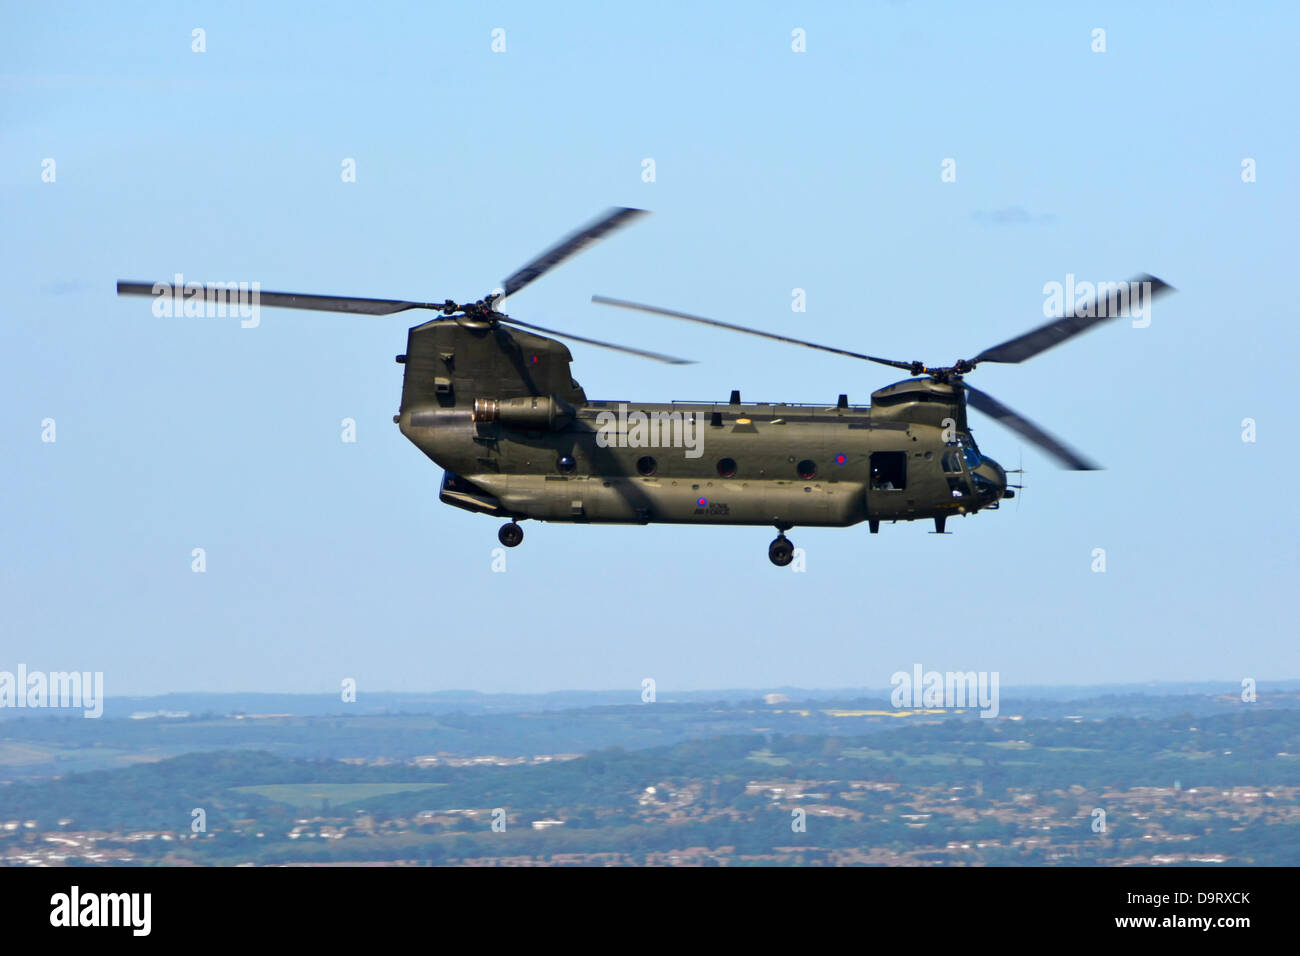 Boeing RAF Chinook tandem rotor helicopter flying over the City of London - Stock Image